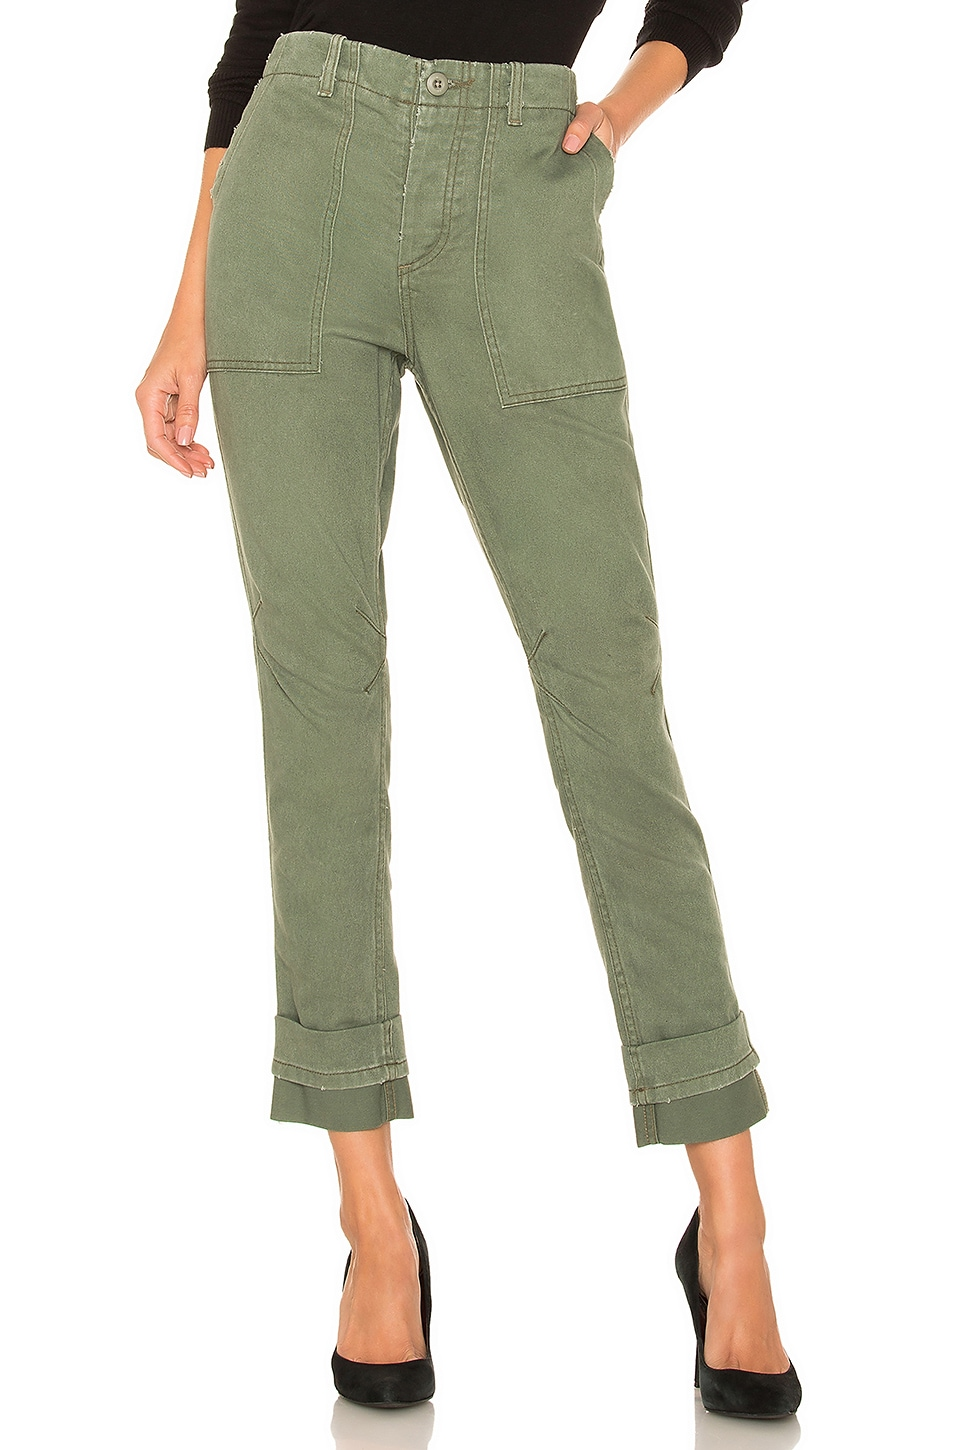 Le Superbe Casbah Cargo Pant in Army